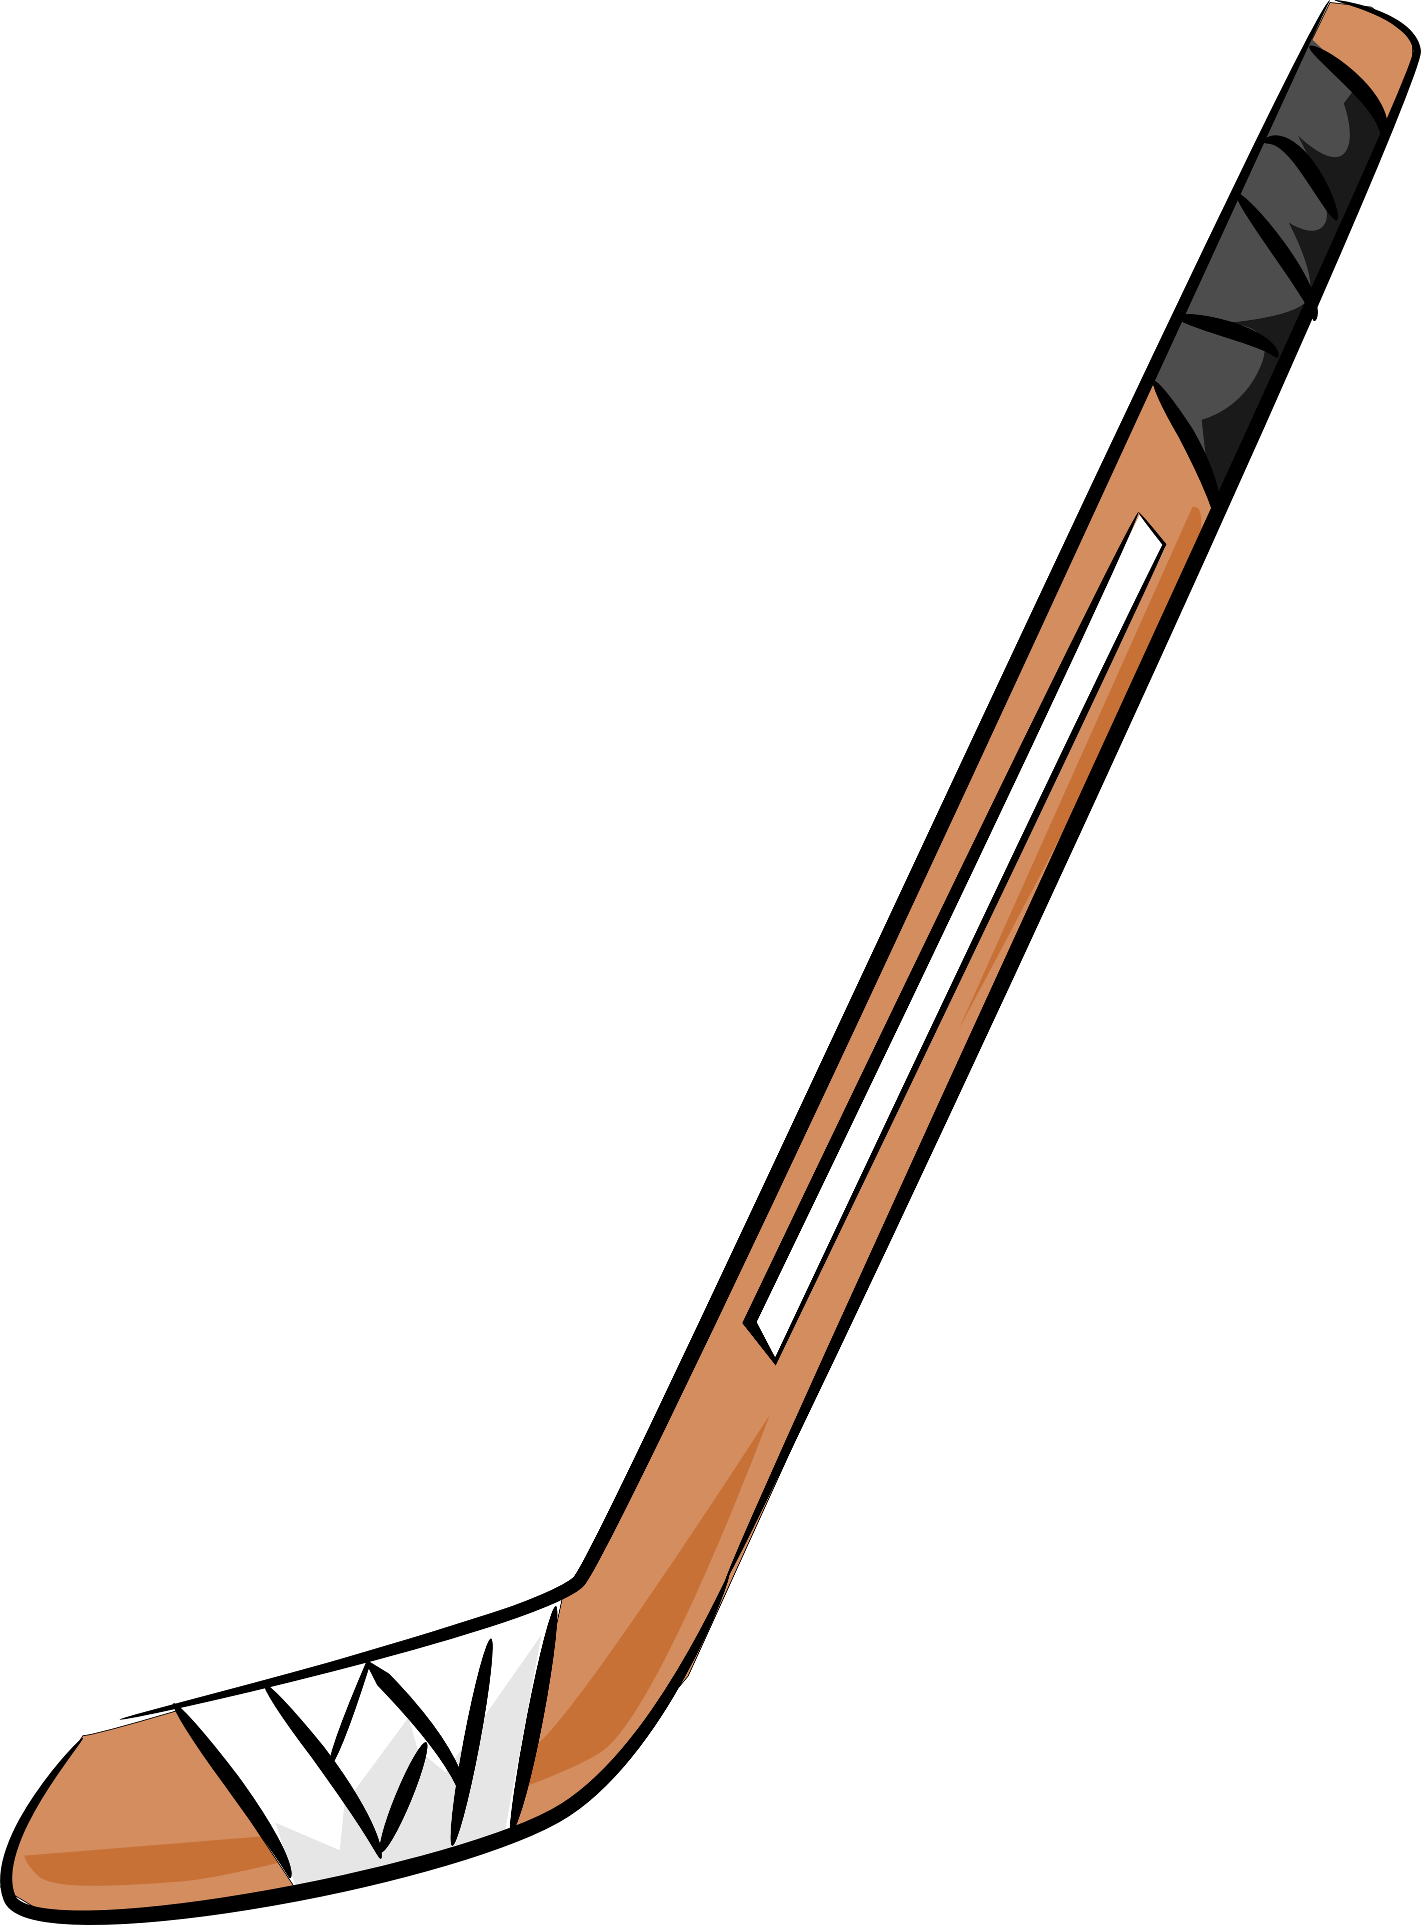 image freeuse stock Ice stick panda free. Hockey clipart.